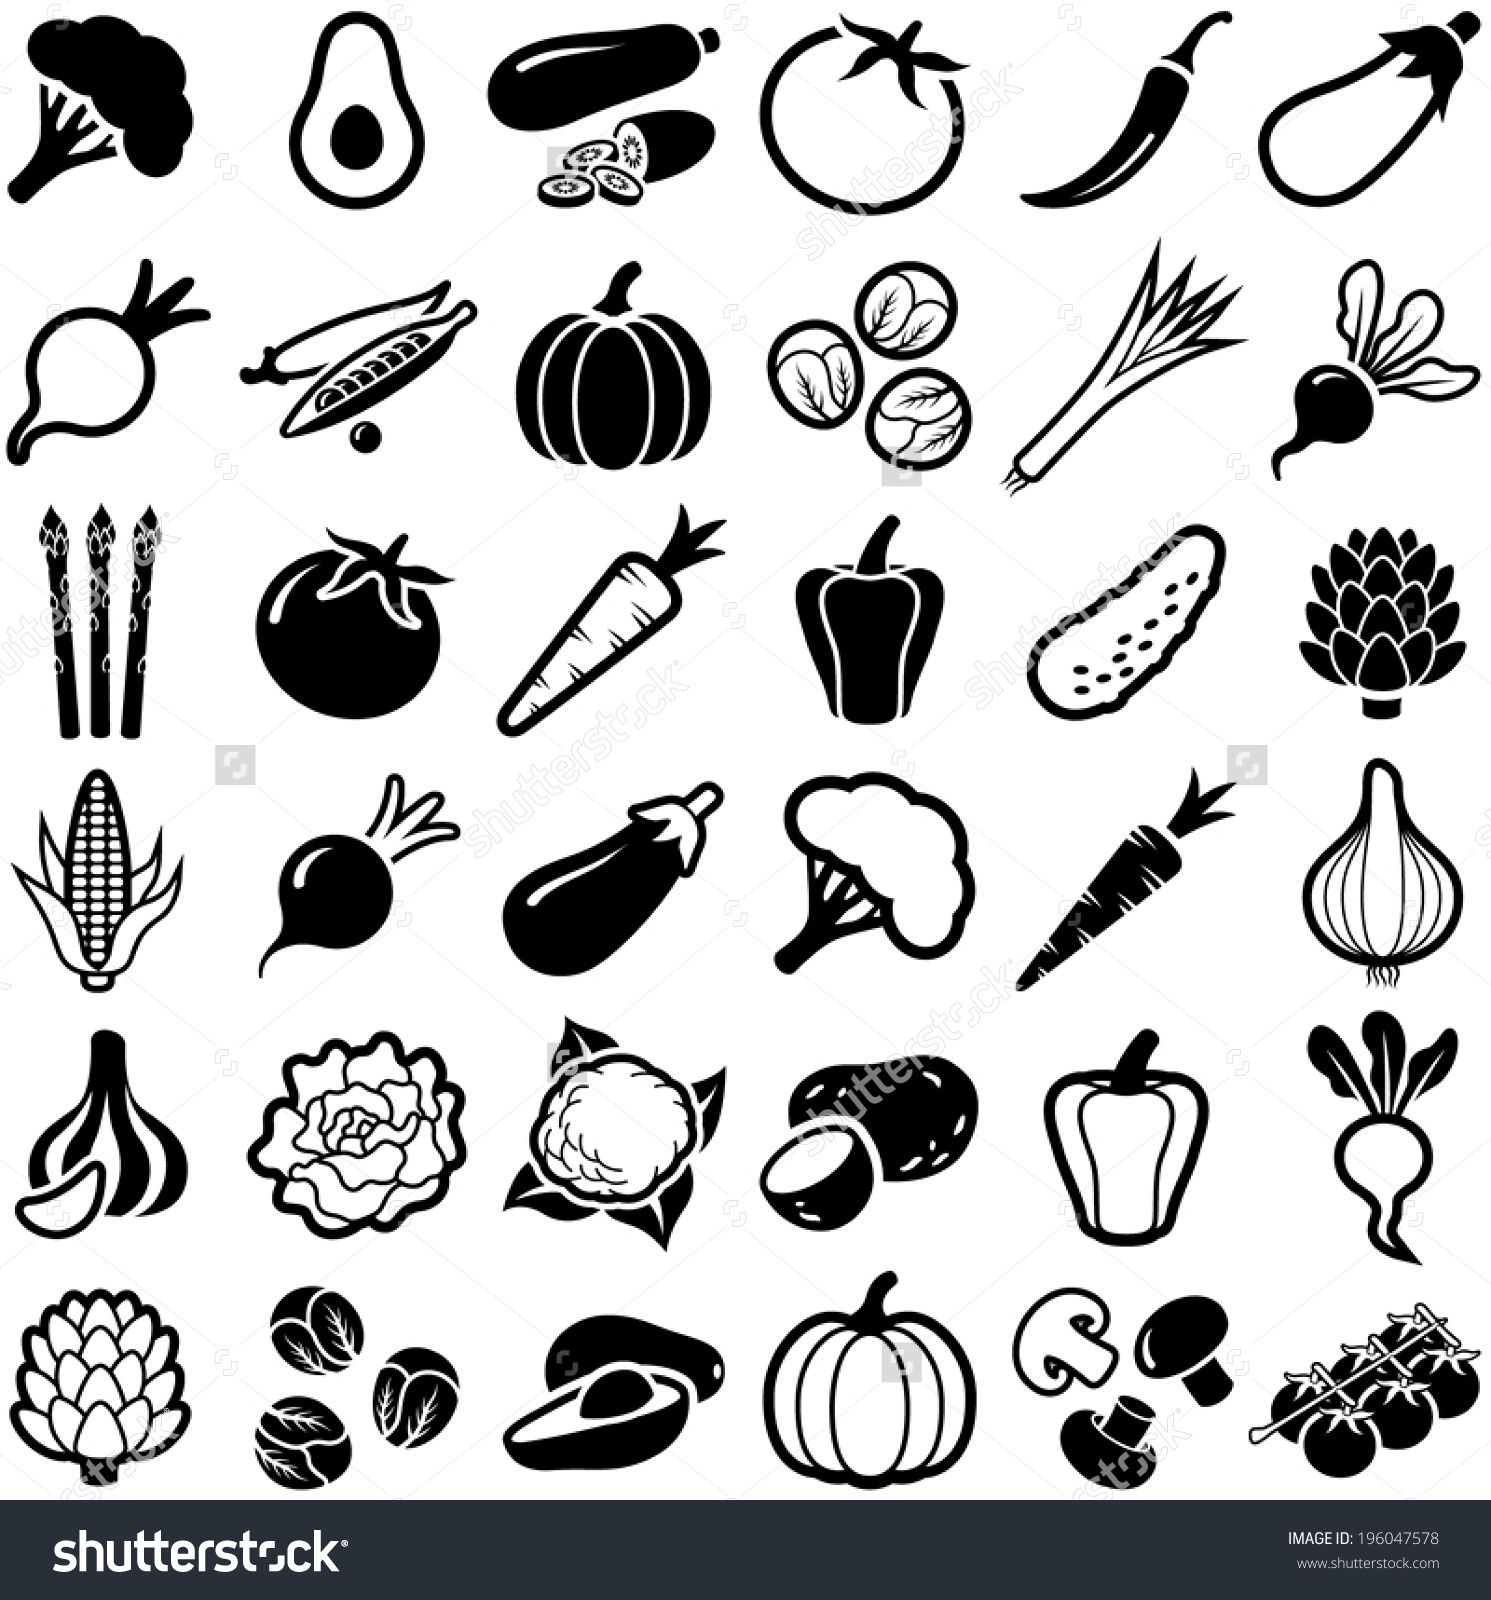 clipart vegetables black and white Google Search